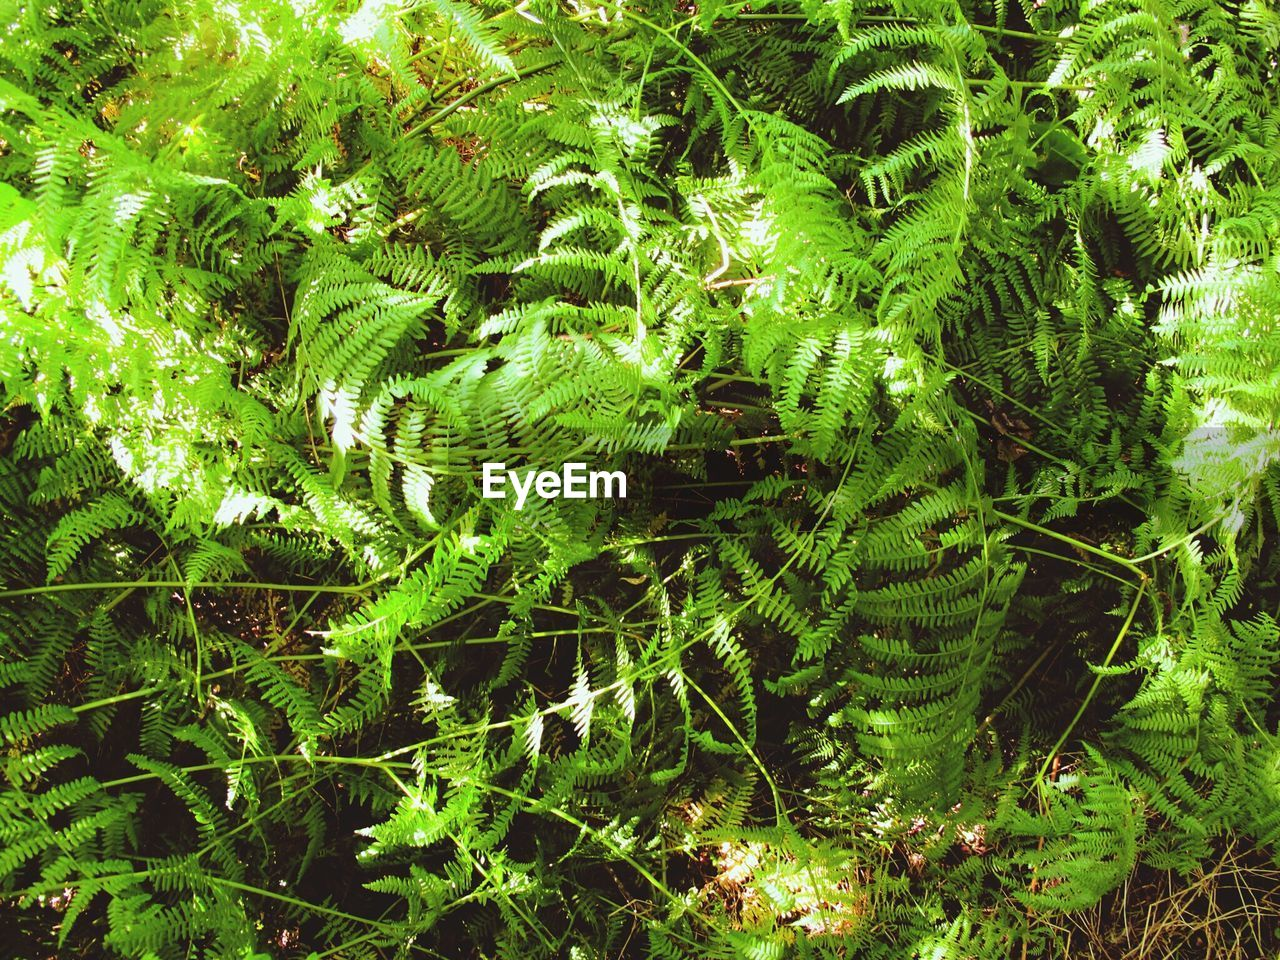 green, nature, growth, fern, plant, leaf, day, forest, beauty in nature, no people, sunshine, outdoors